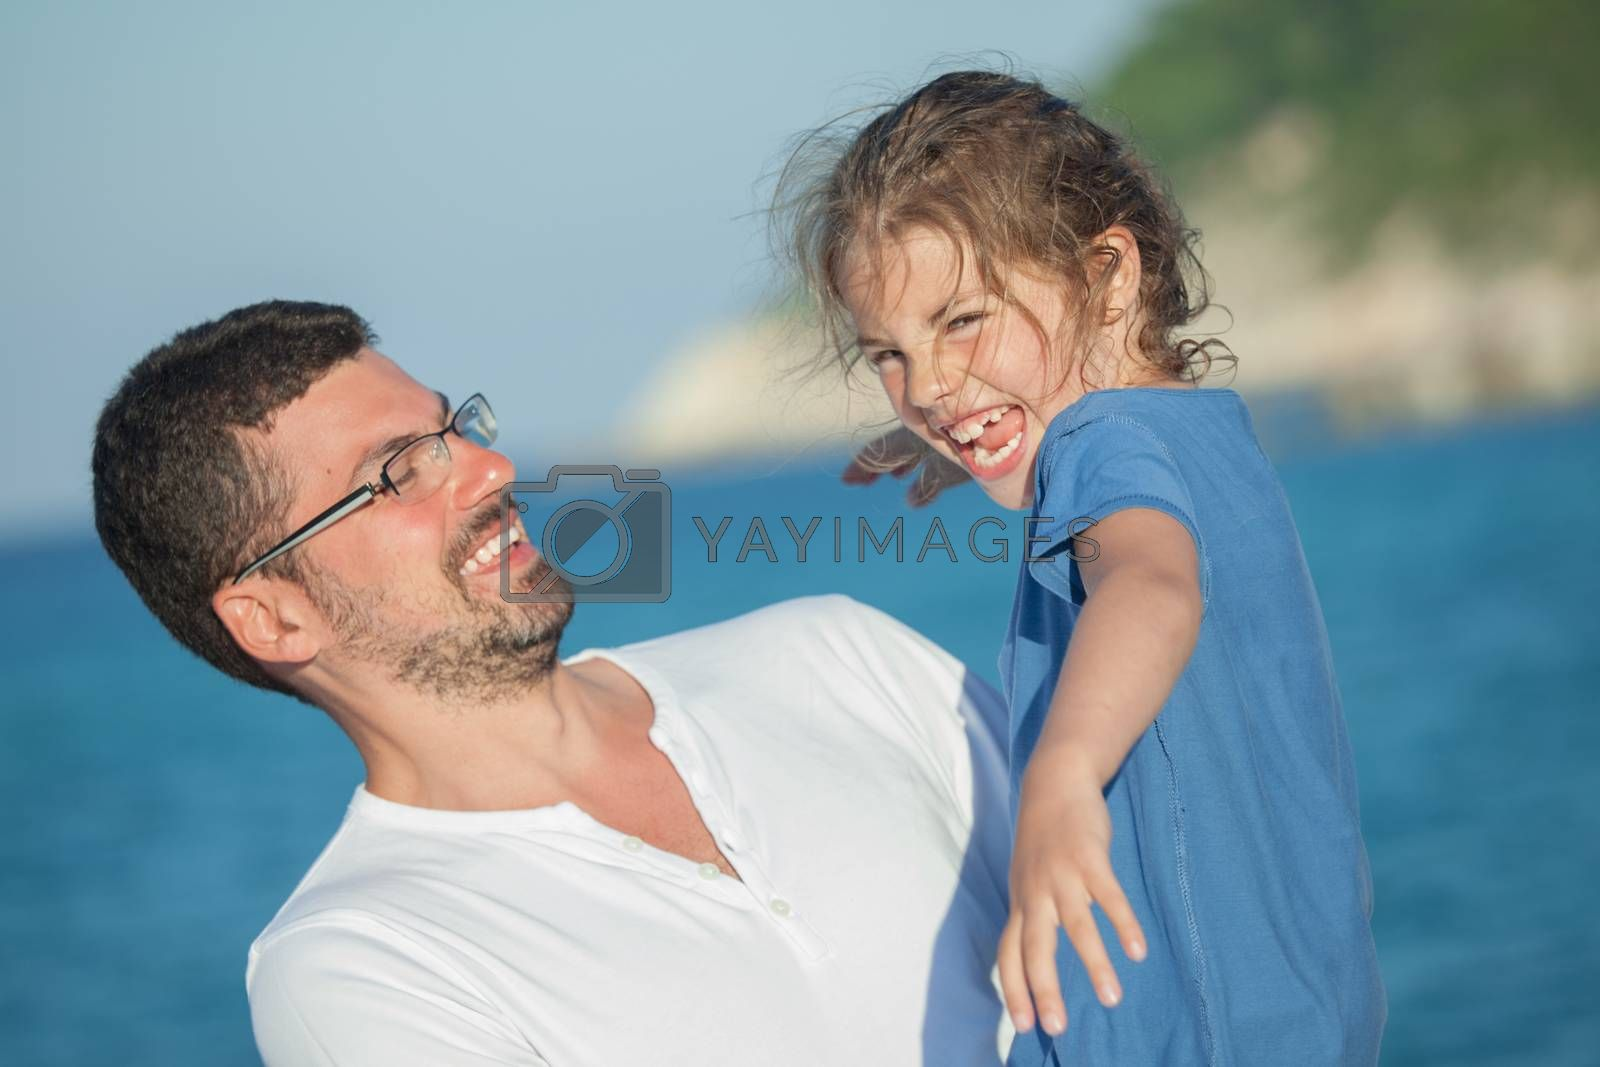 Royalty free image of Girl Daughter Father by vilevi